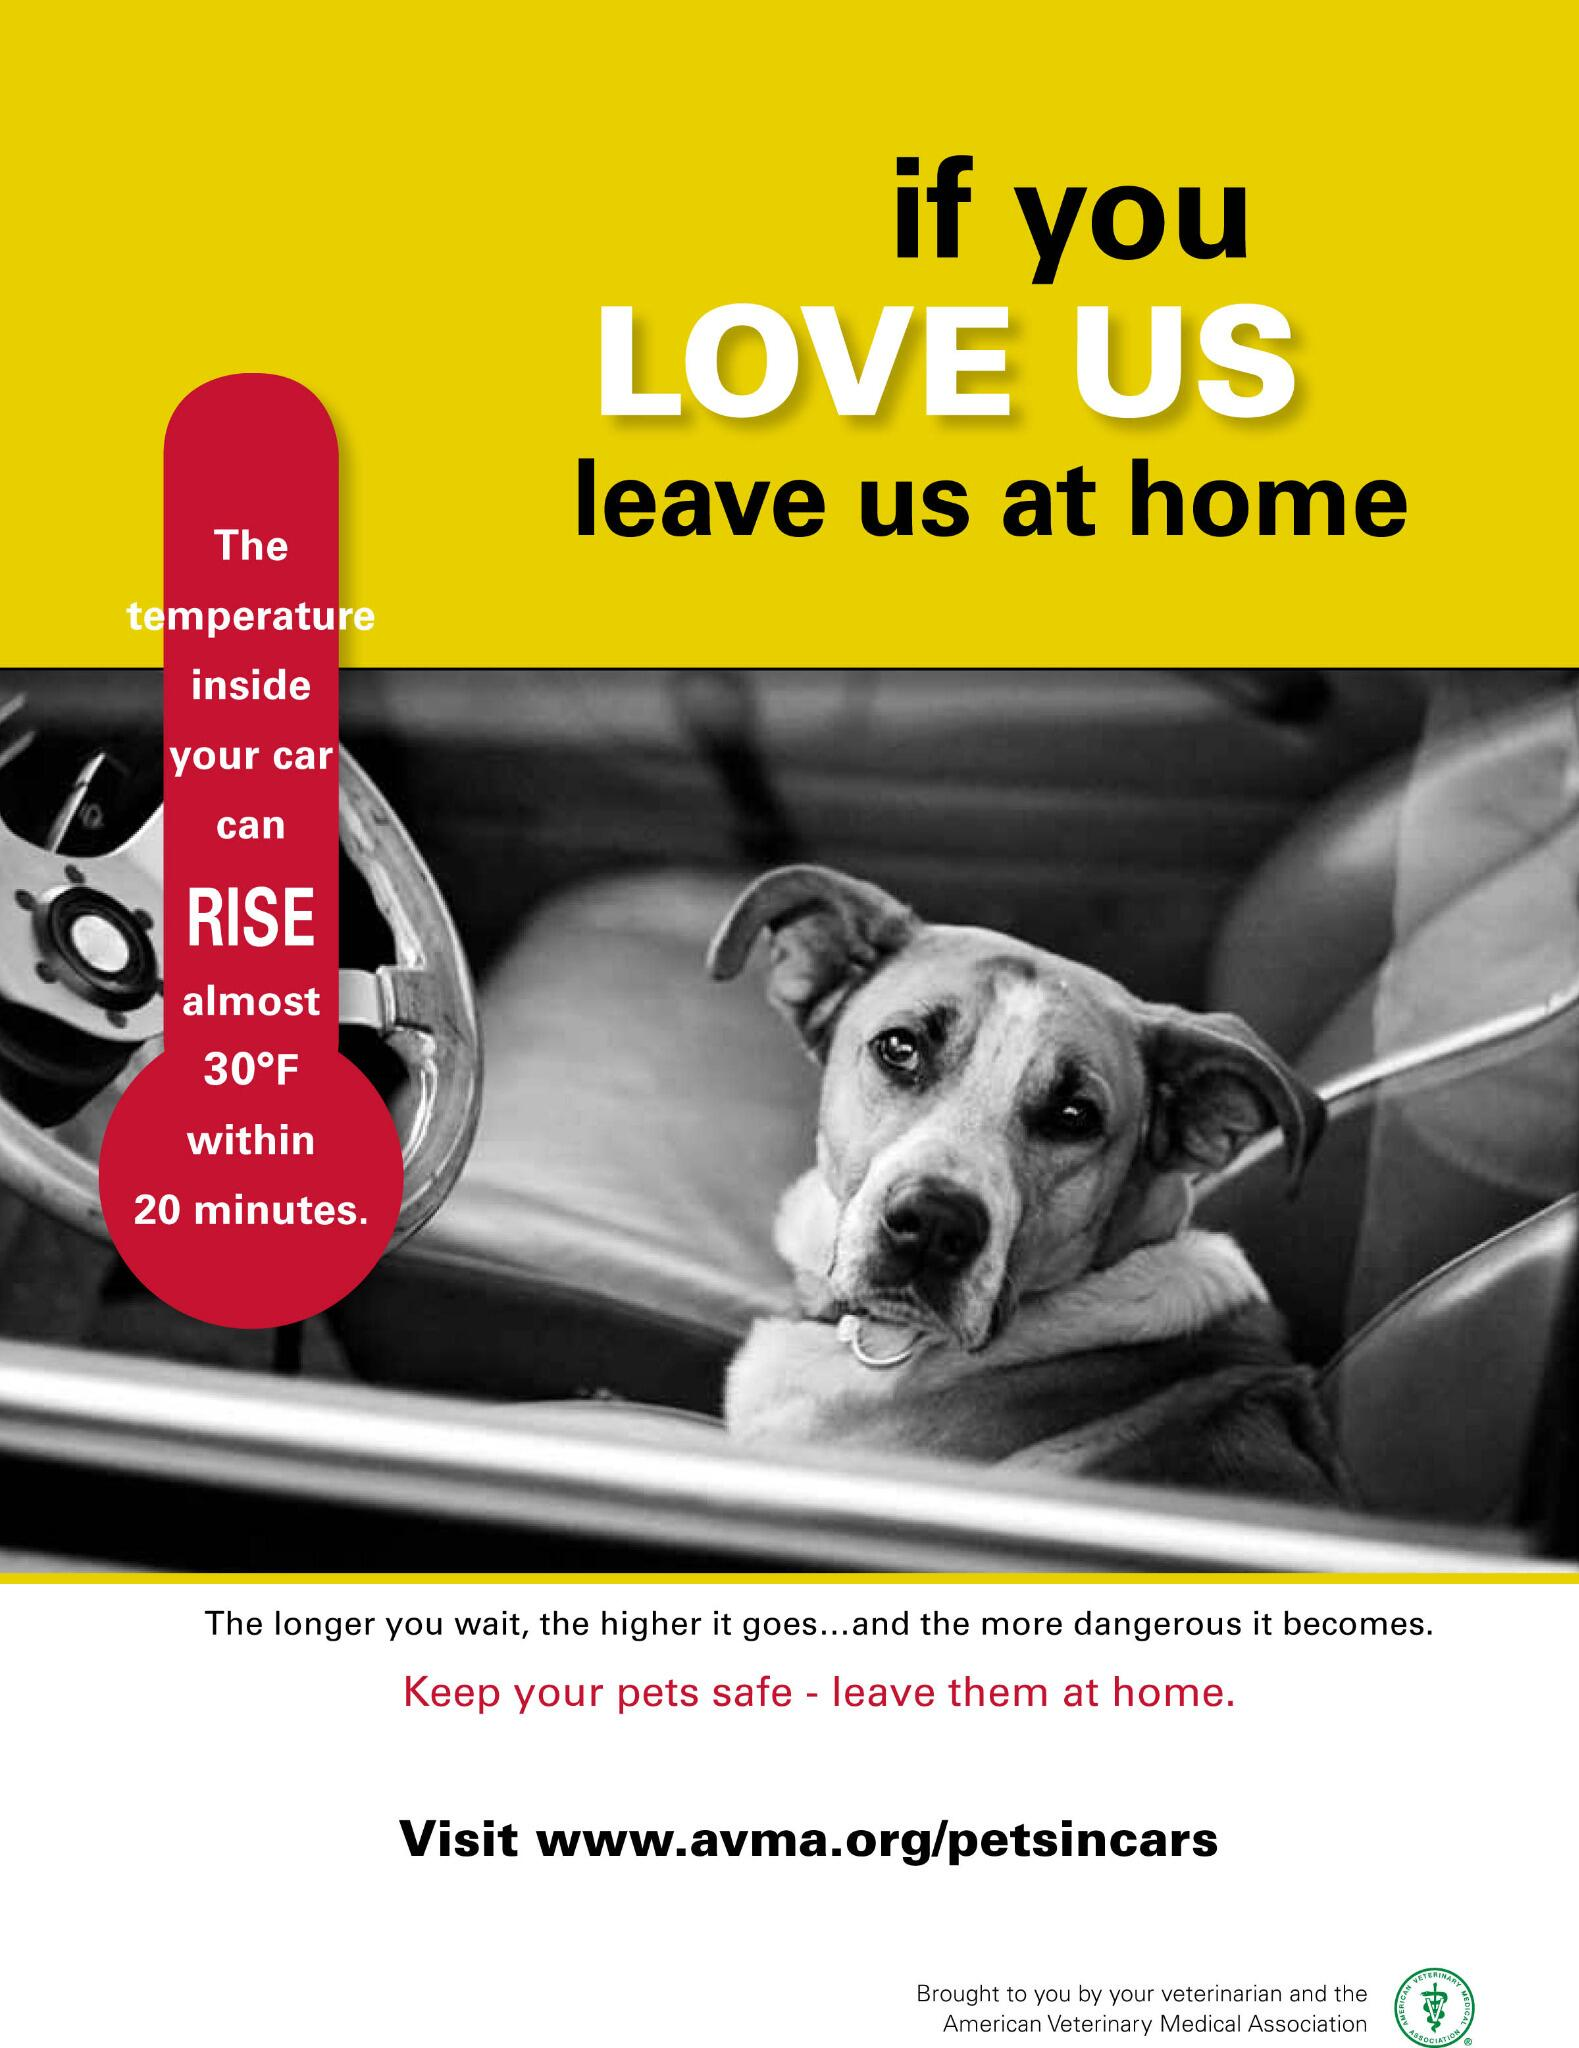 RT @AVMAvets: If you love your pets, sometimes it's best to leave them at home. http://t.co/ThjZ2vEgBM